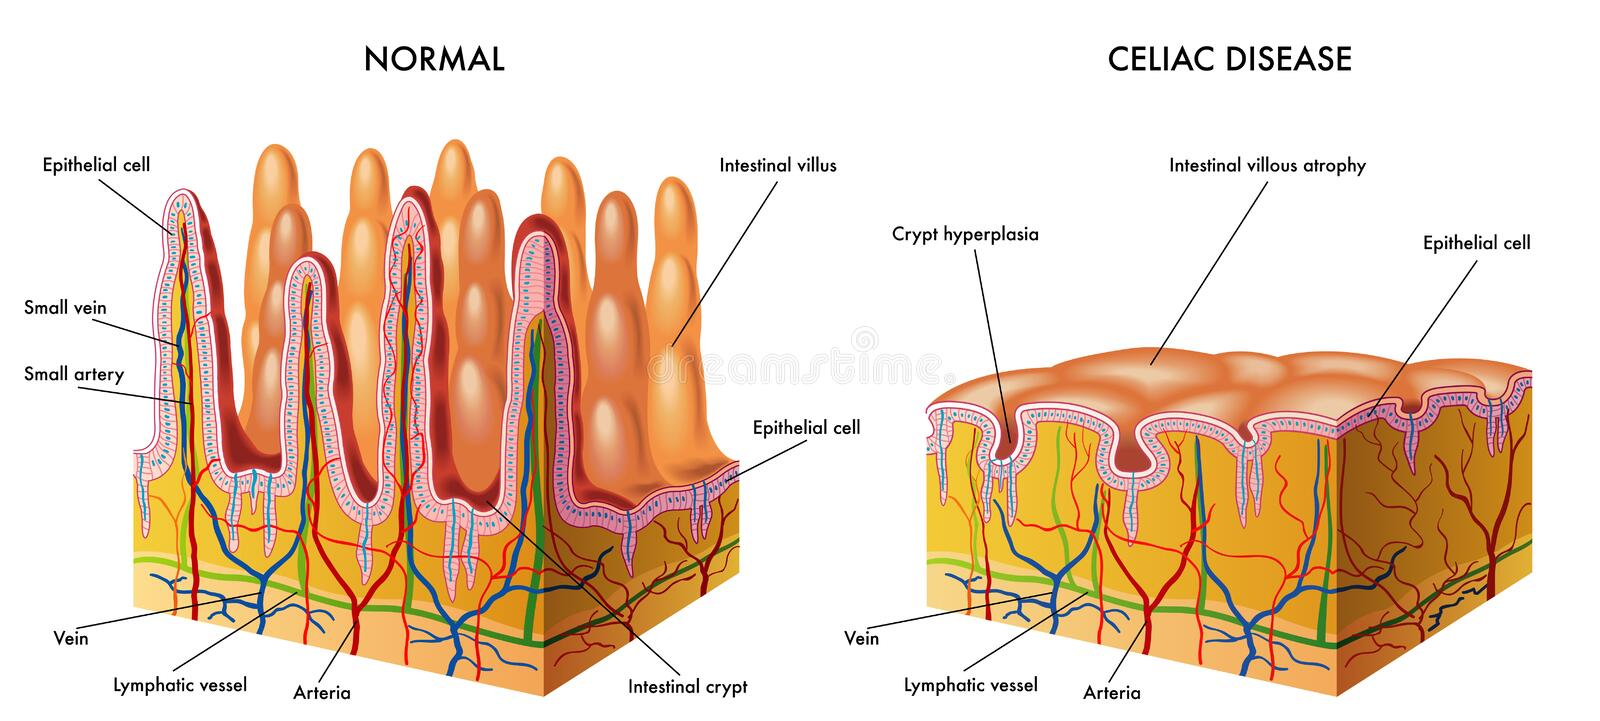 Celiac disease. Medical illustration of the modification of the intestinal mucosa in celiac subject